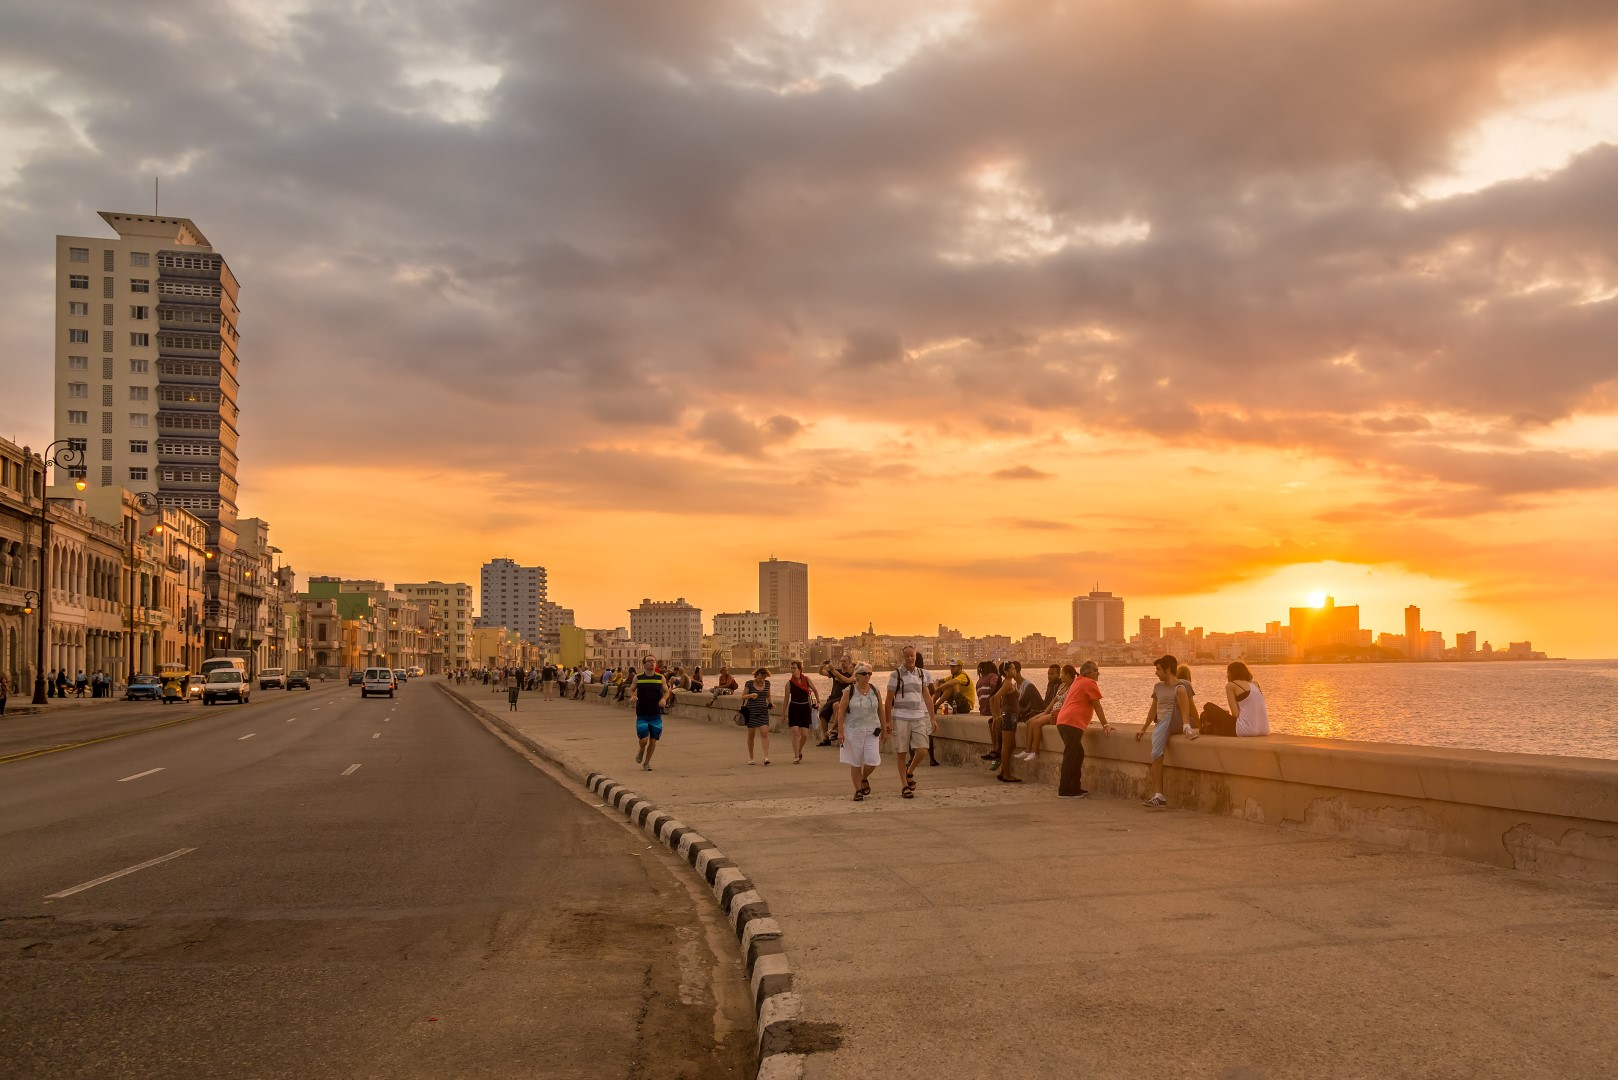 Malecon i solnedgang